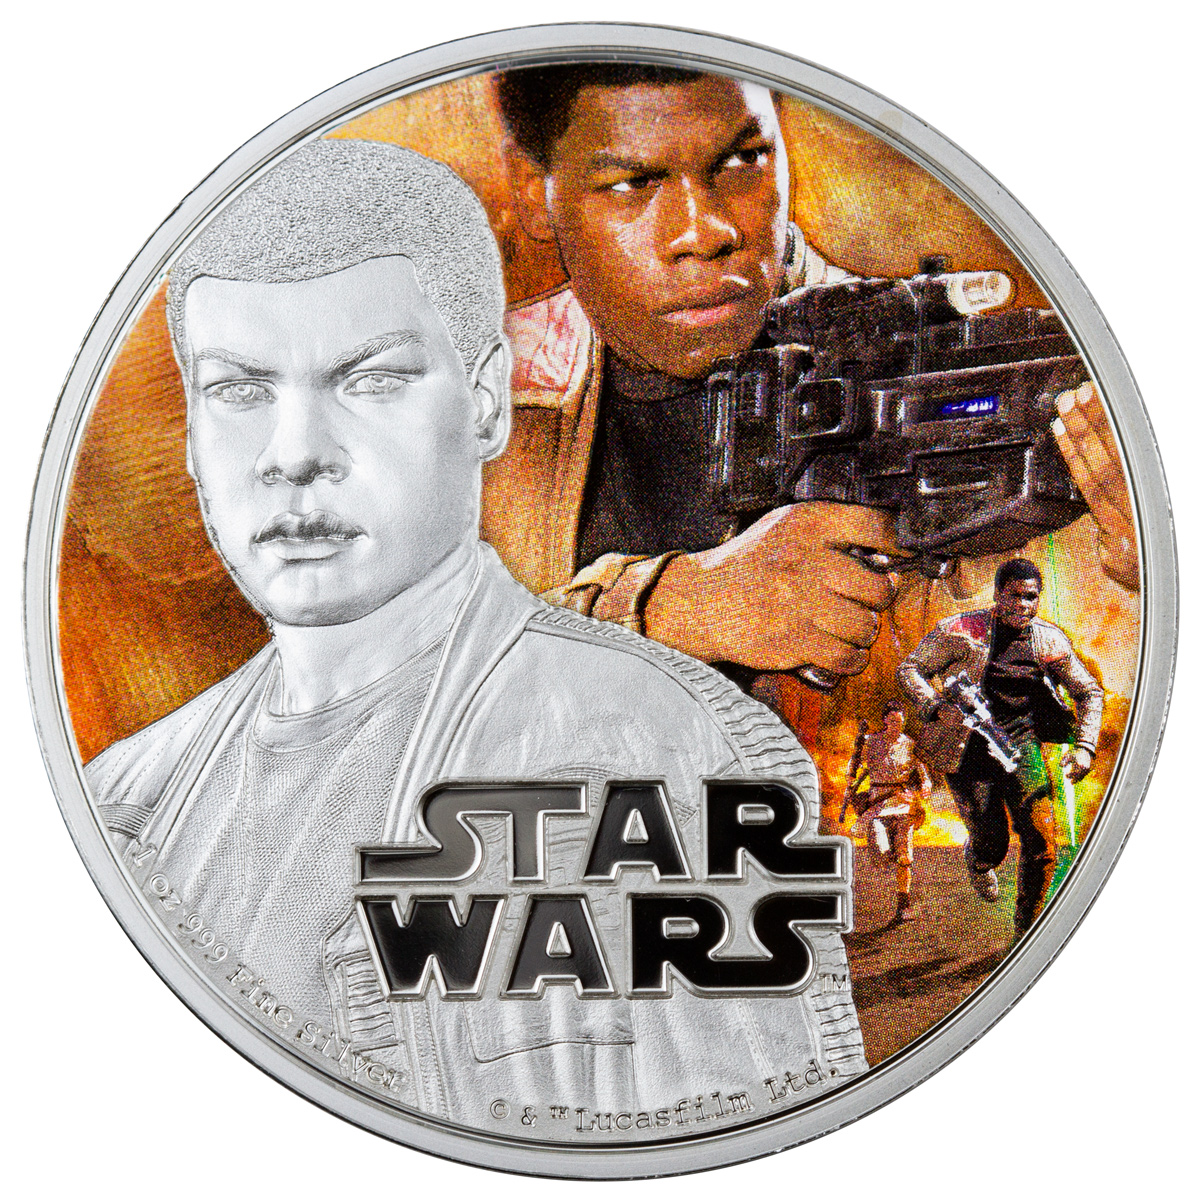 2016 Niue $2 1 oz. Colorized Proof Silver Star Wars: The Force Awakens - Finn - GEM Proof (Original Mint Packaging)